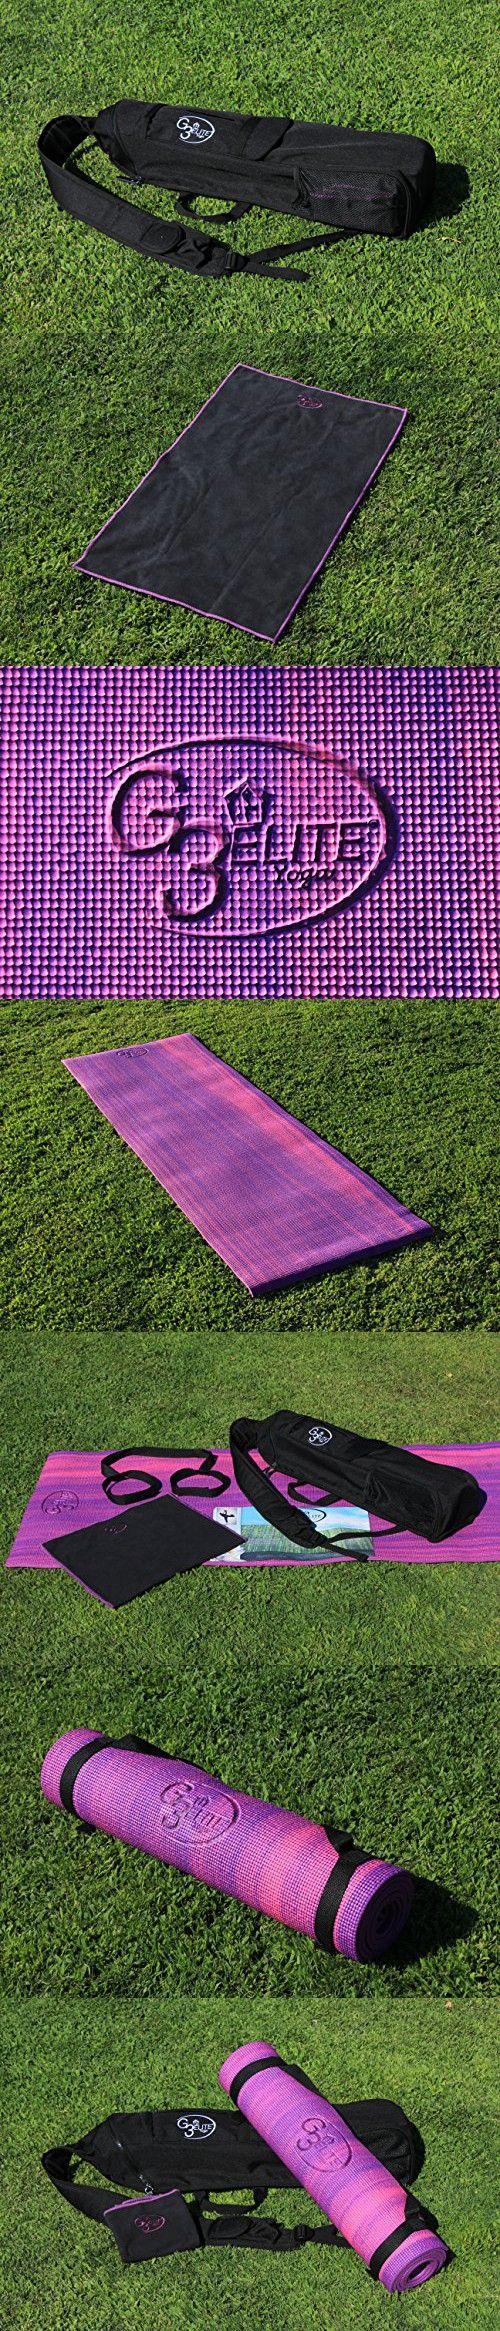 G3Elite Yoga Set, Purple/Pink Combo Starter Kit Includes - Yoga Mat, Bag, Sling Strap, Plus Hand Towel